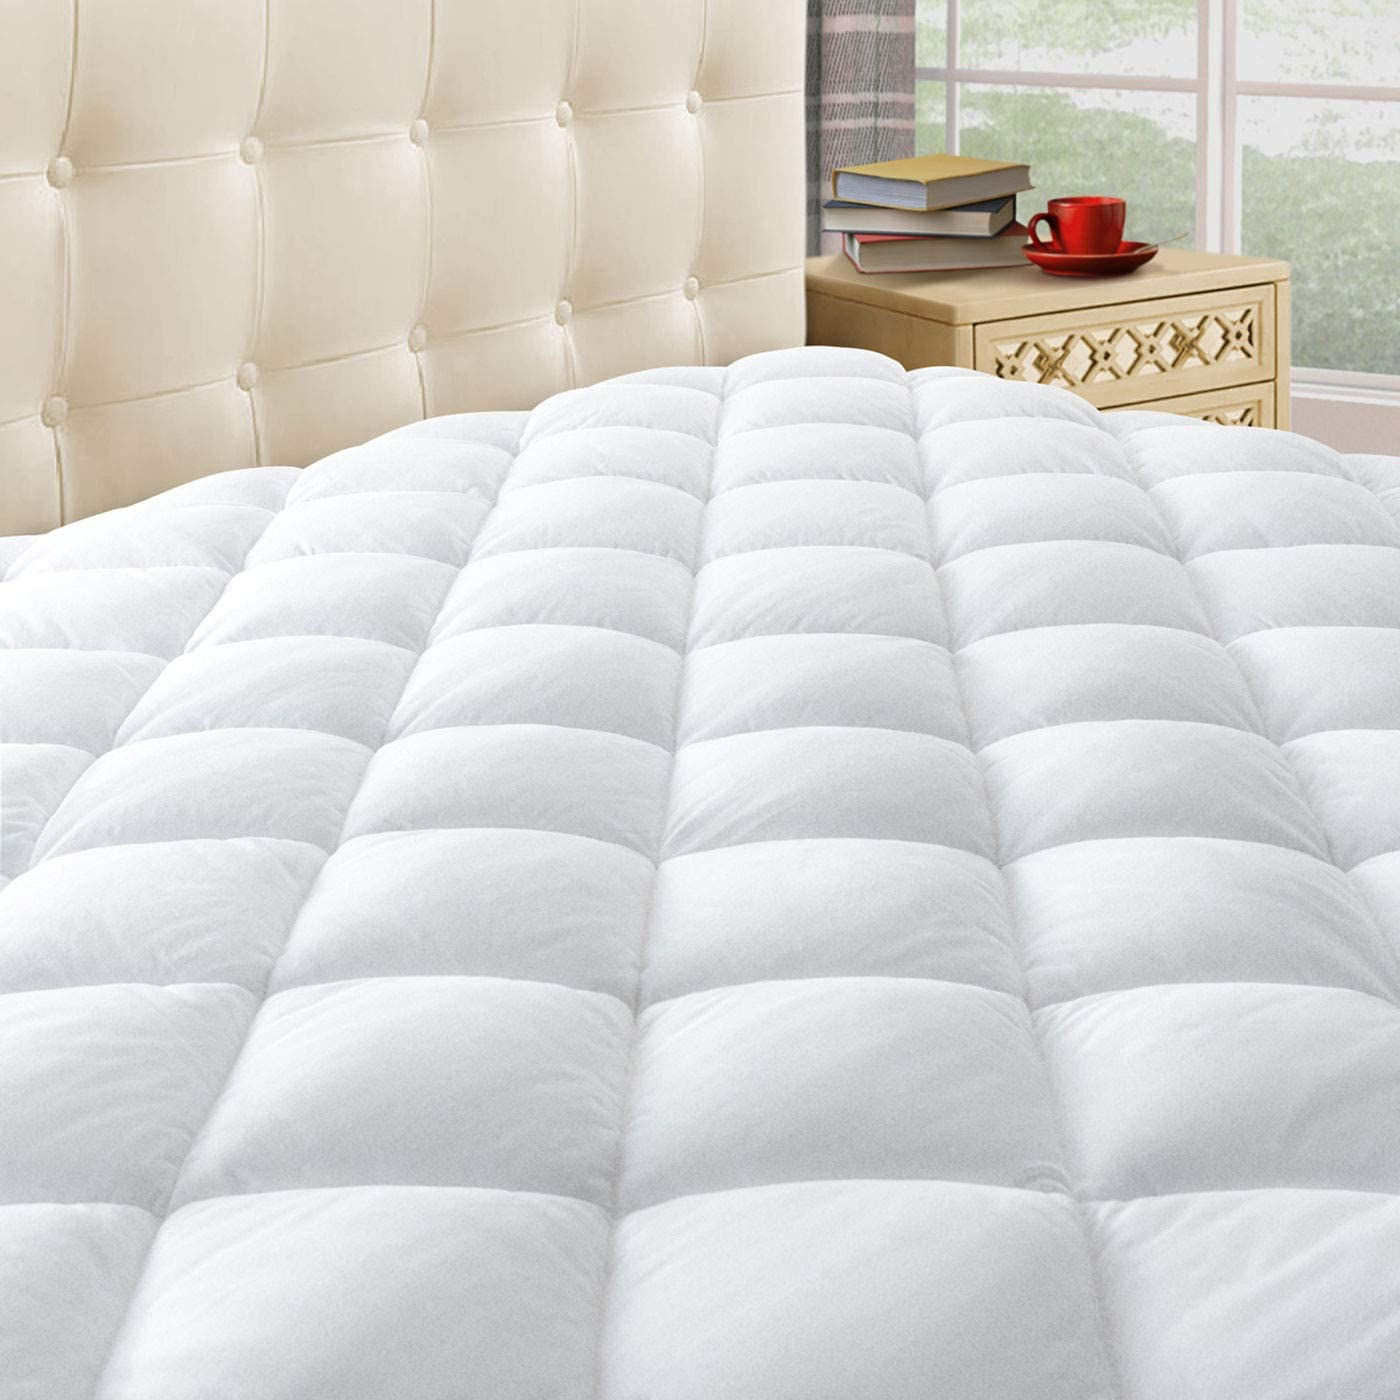 "Taupiri California King Quilted Mattress Pad Cover with Deep Pocket (8""-21""), Cooling Soft Pillowtop Mattress Cover, Hypoallergenic Down Alternative Mattress Topper"